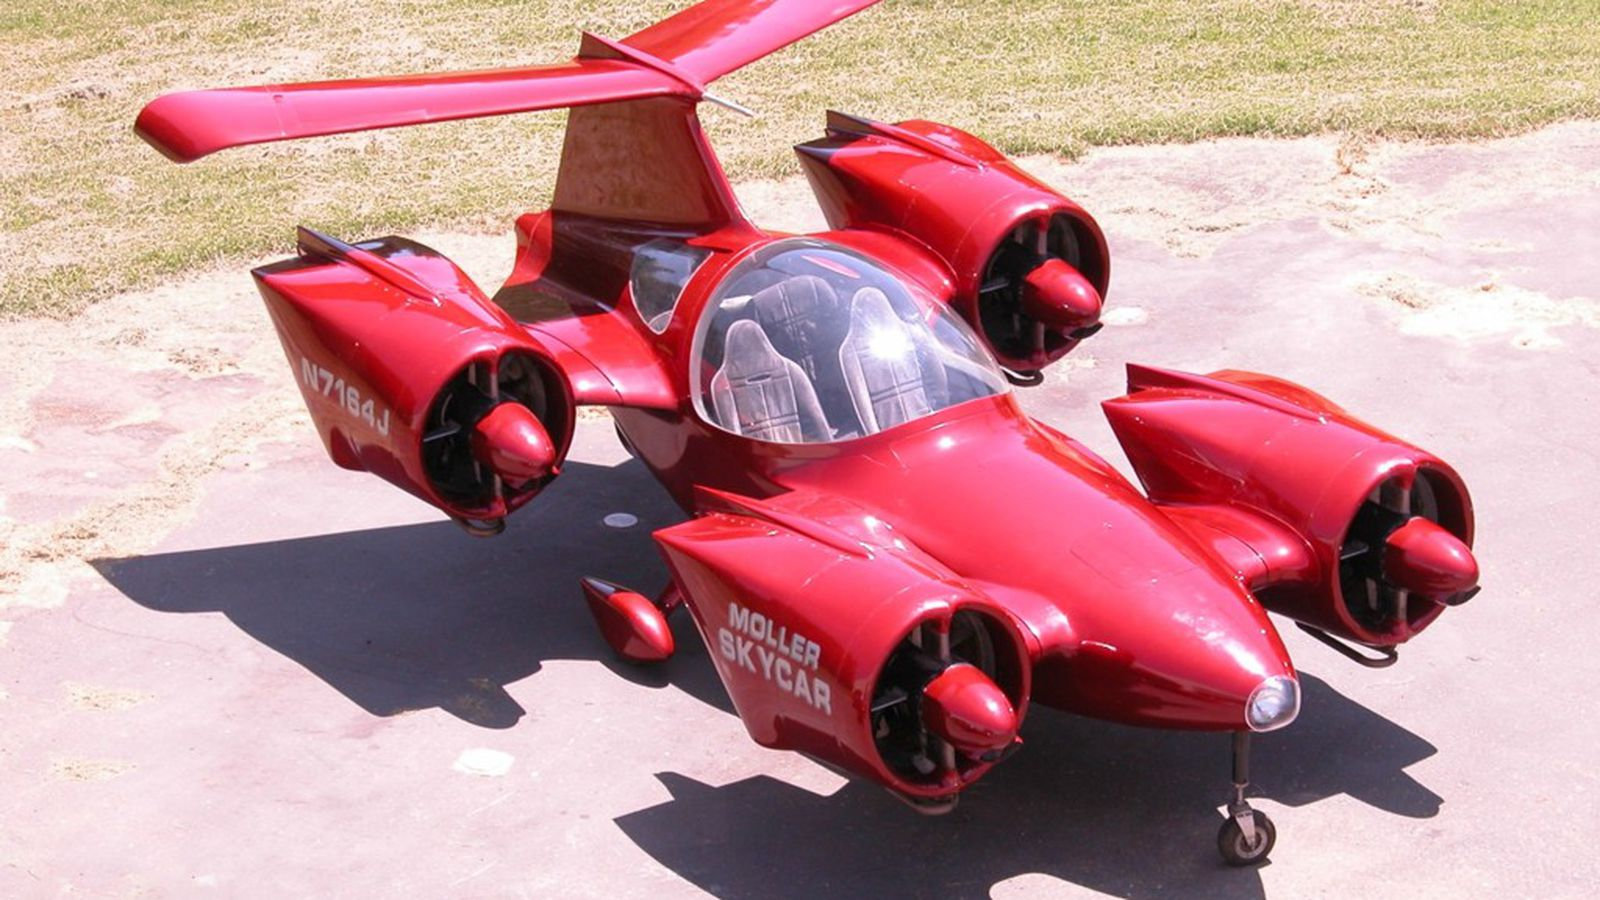 You can now buy the Moller Skycar, one of the world's most iconic (and dubious) 'flying cars'